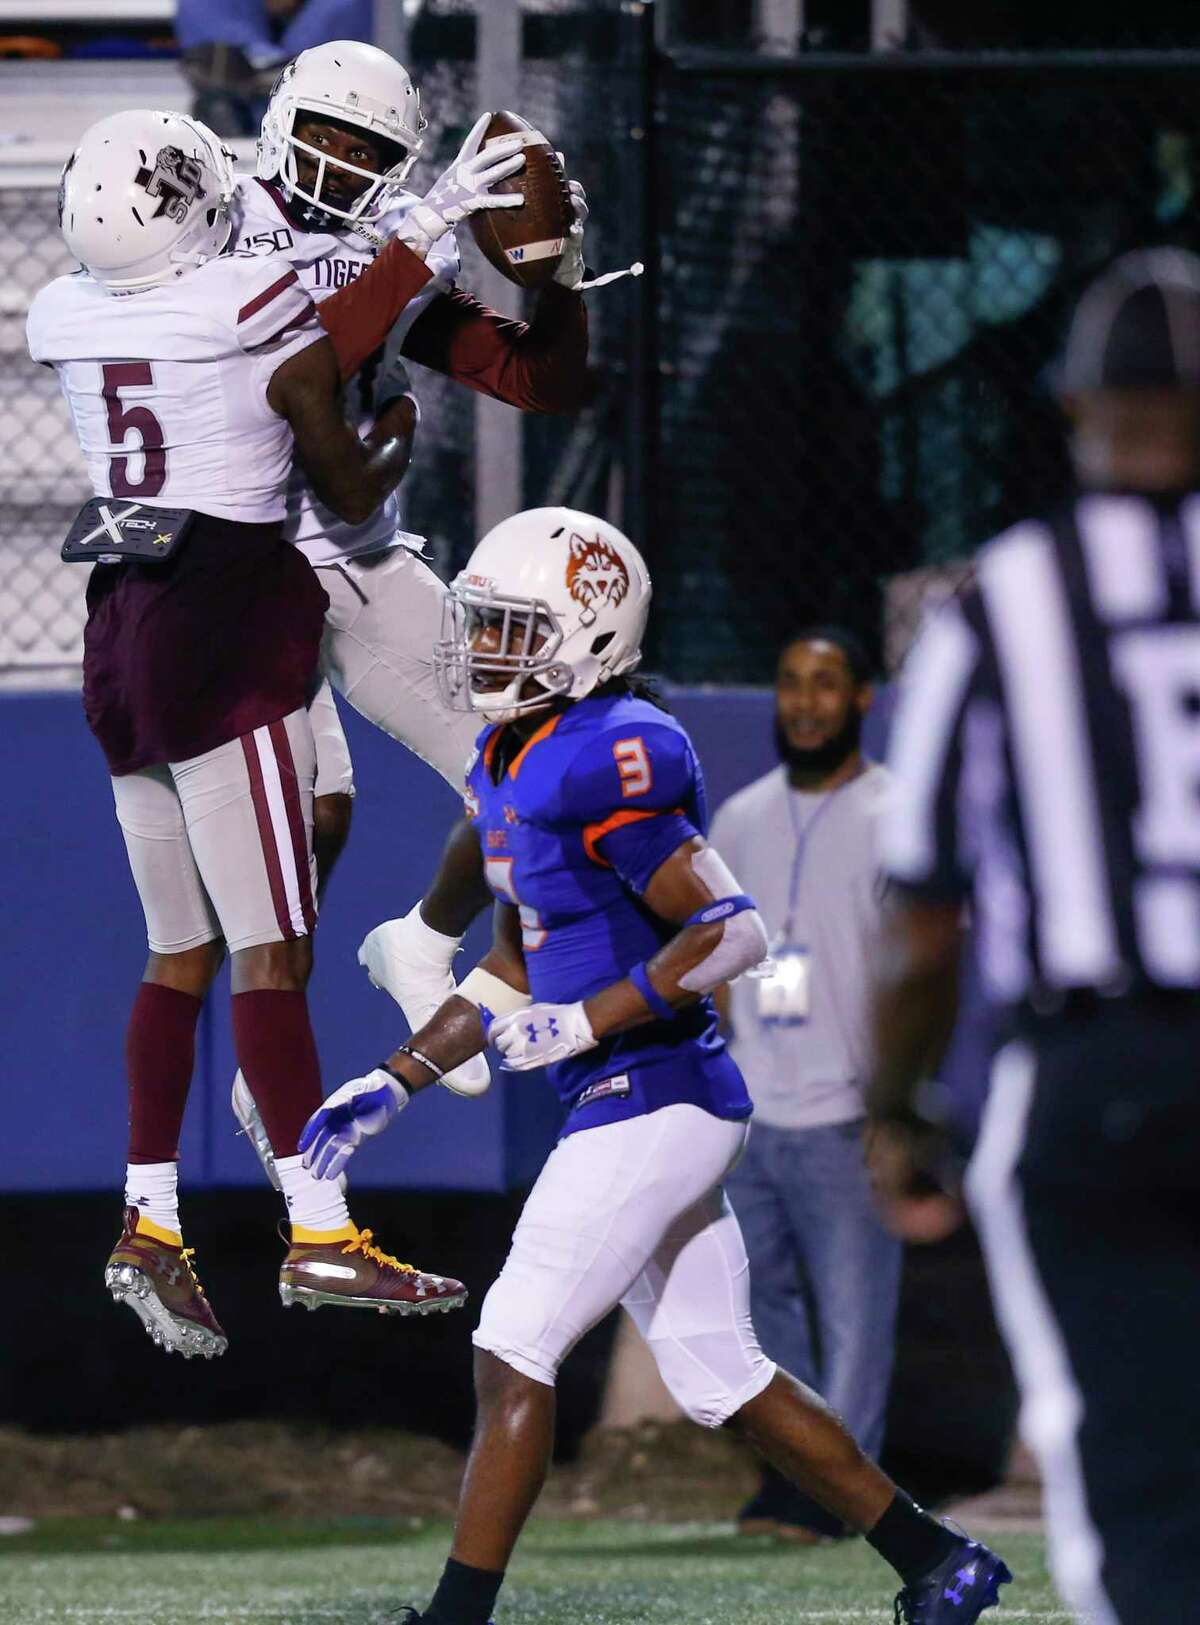 Texas Southern Tigers wide receiver Tren'Davian Dickson (11) celebrates his touchdown with teammate Thurman Morbley (5) on Saturday, Sept. 28, 2019 in Houston.